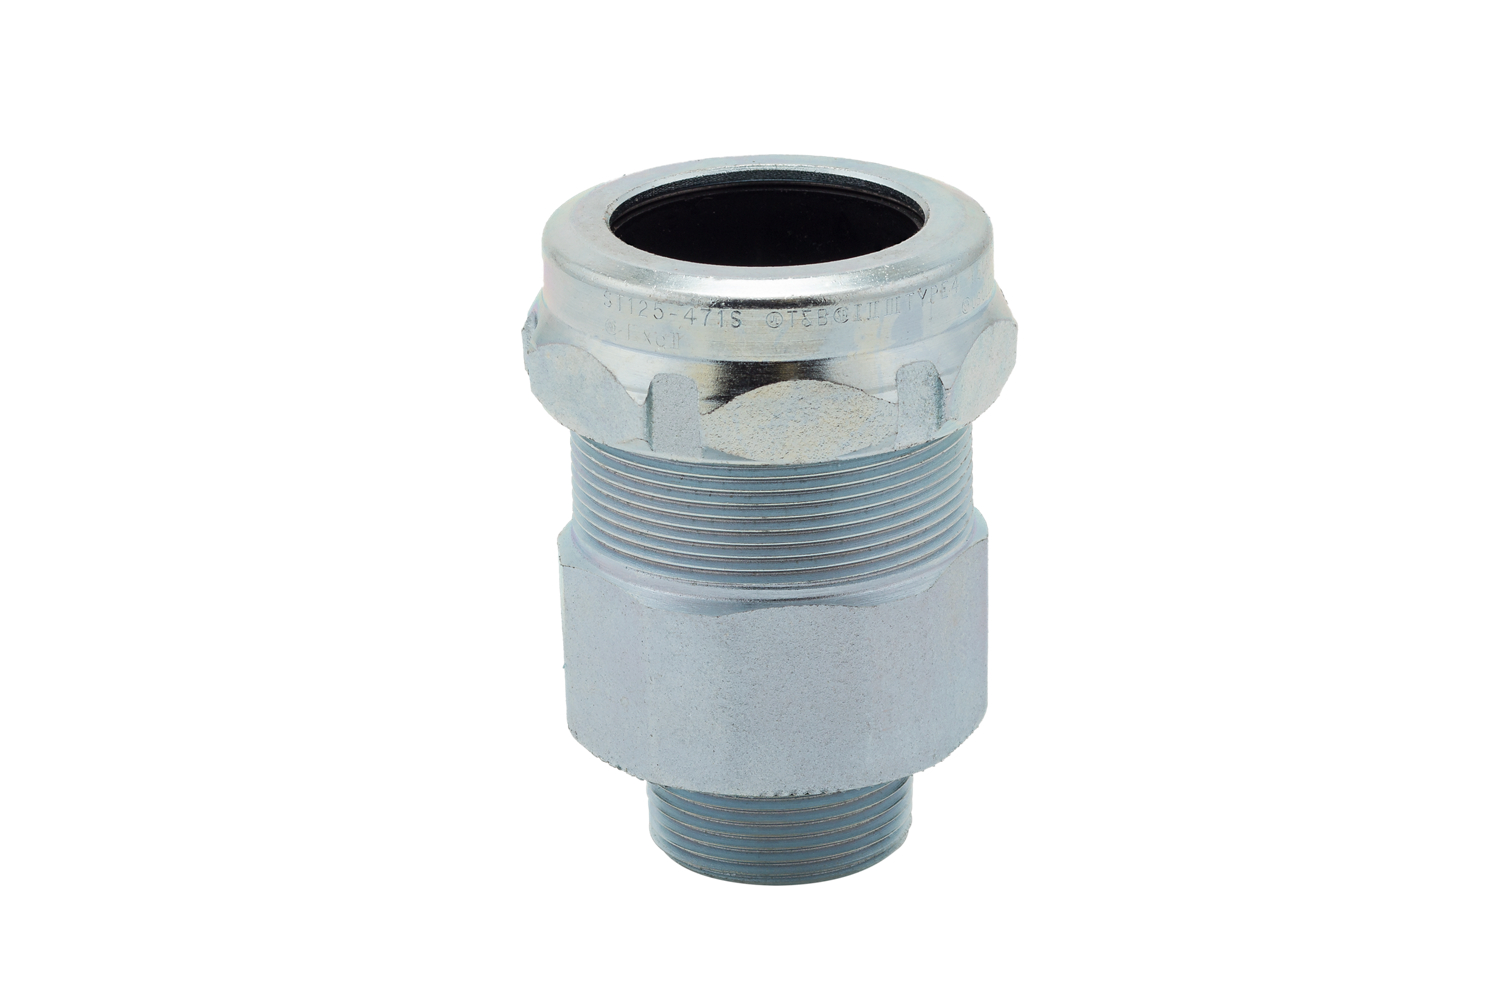 T&B Fittings ST125-471S